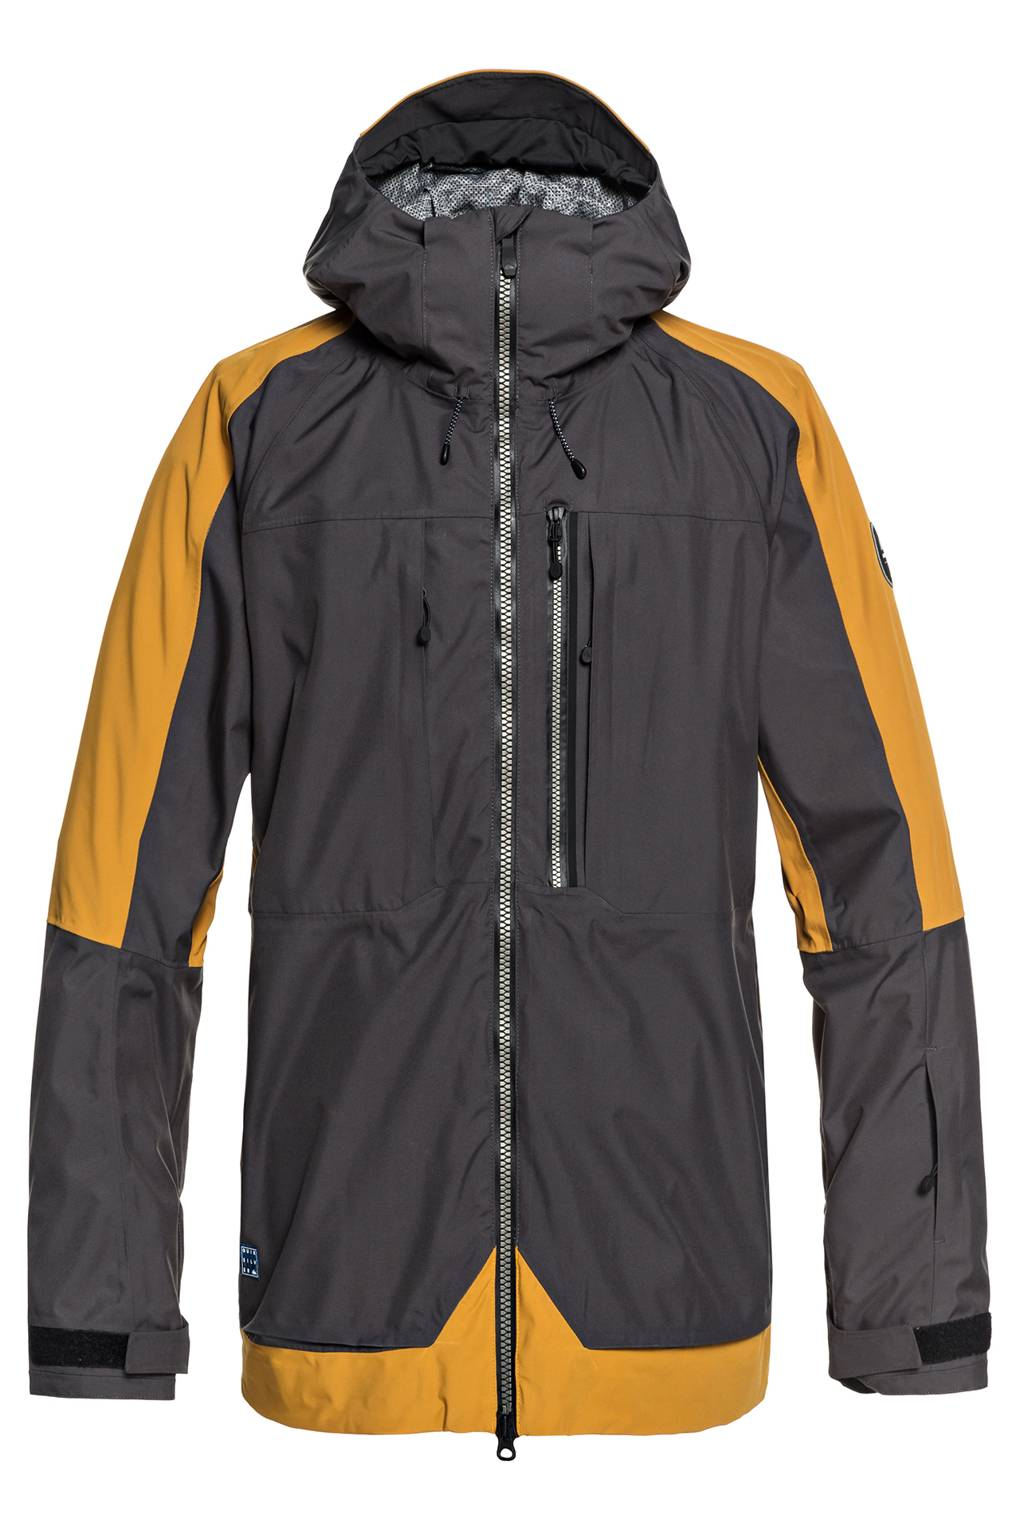 e8e796bc3ee981 The best ski and snowboard wear for men from jackets to goggles ...